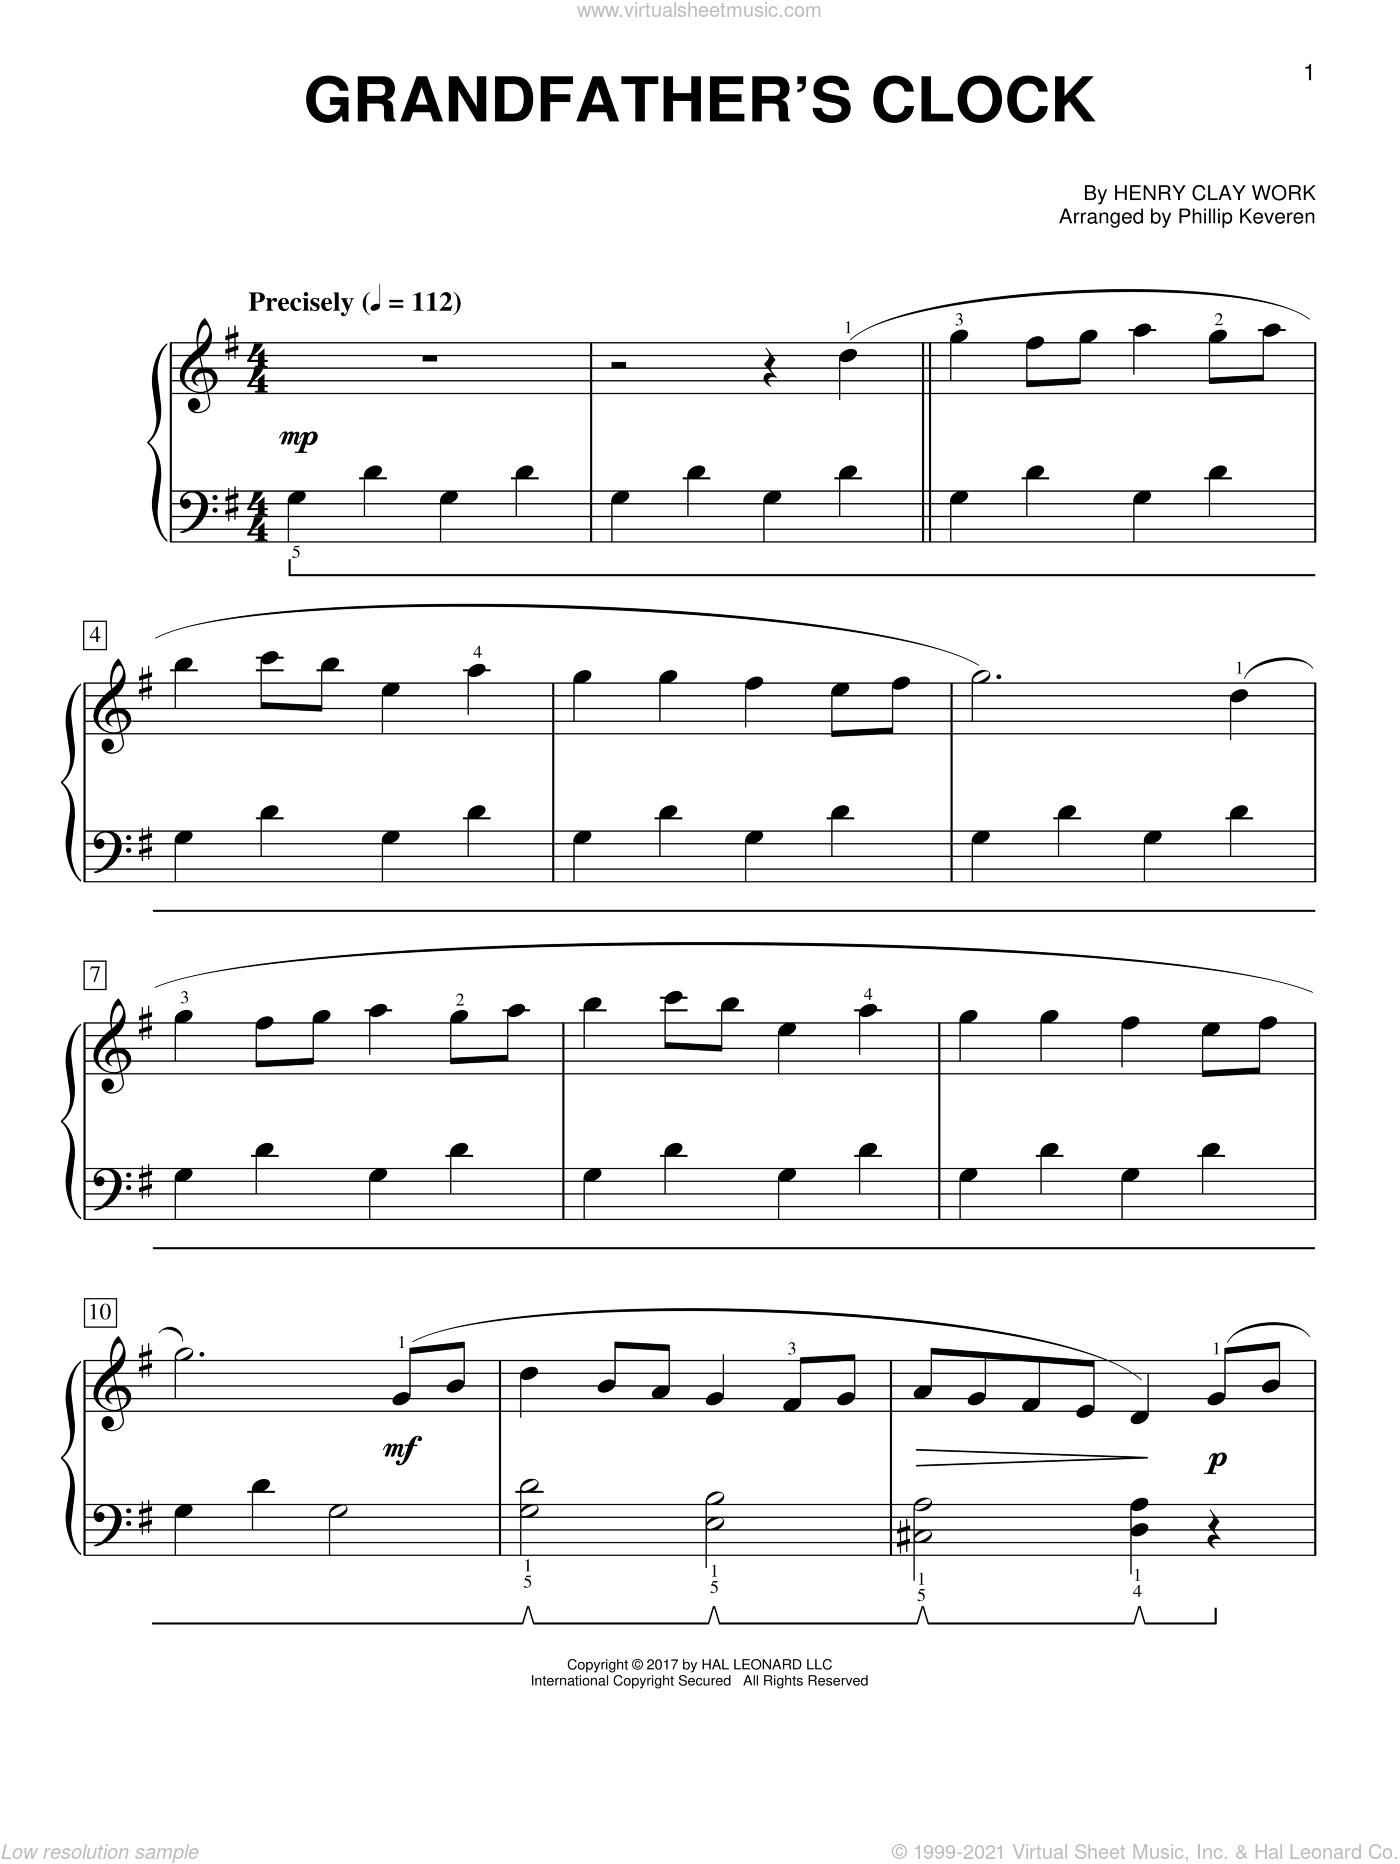 Grandfather's Clock [Classical version] (arr. Phillip Keveren) sheet music for piano solo by Henry Clay Work and Phillip Keveren, easy skill level